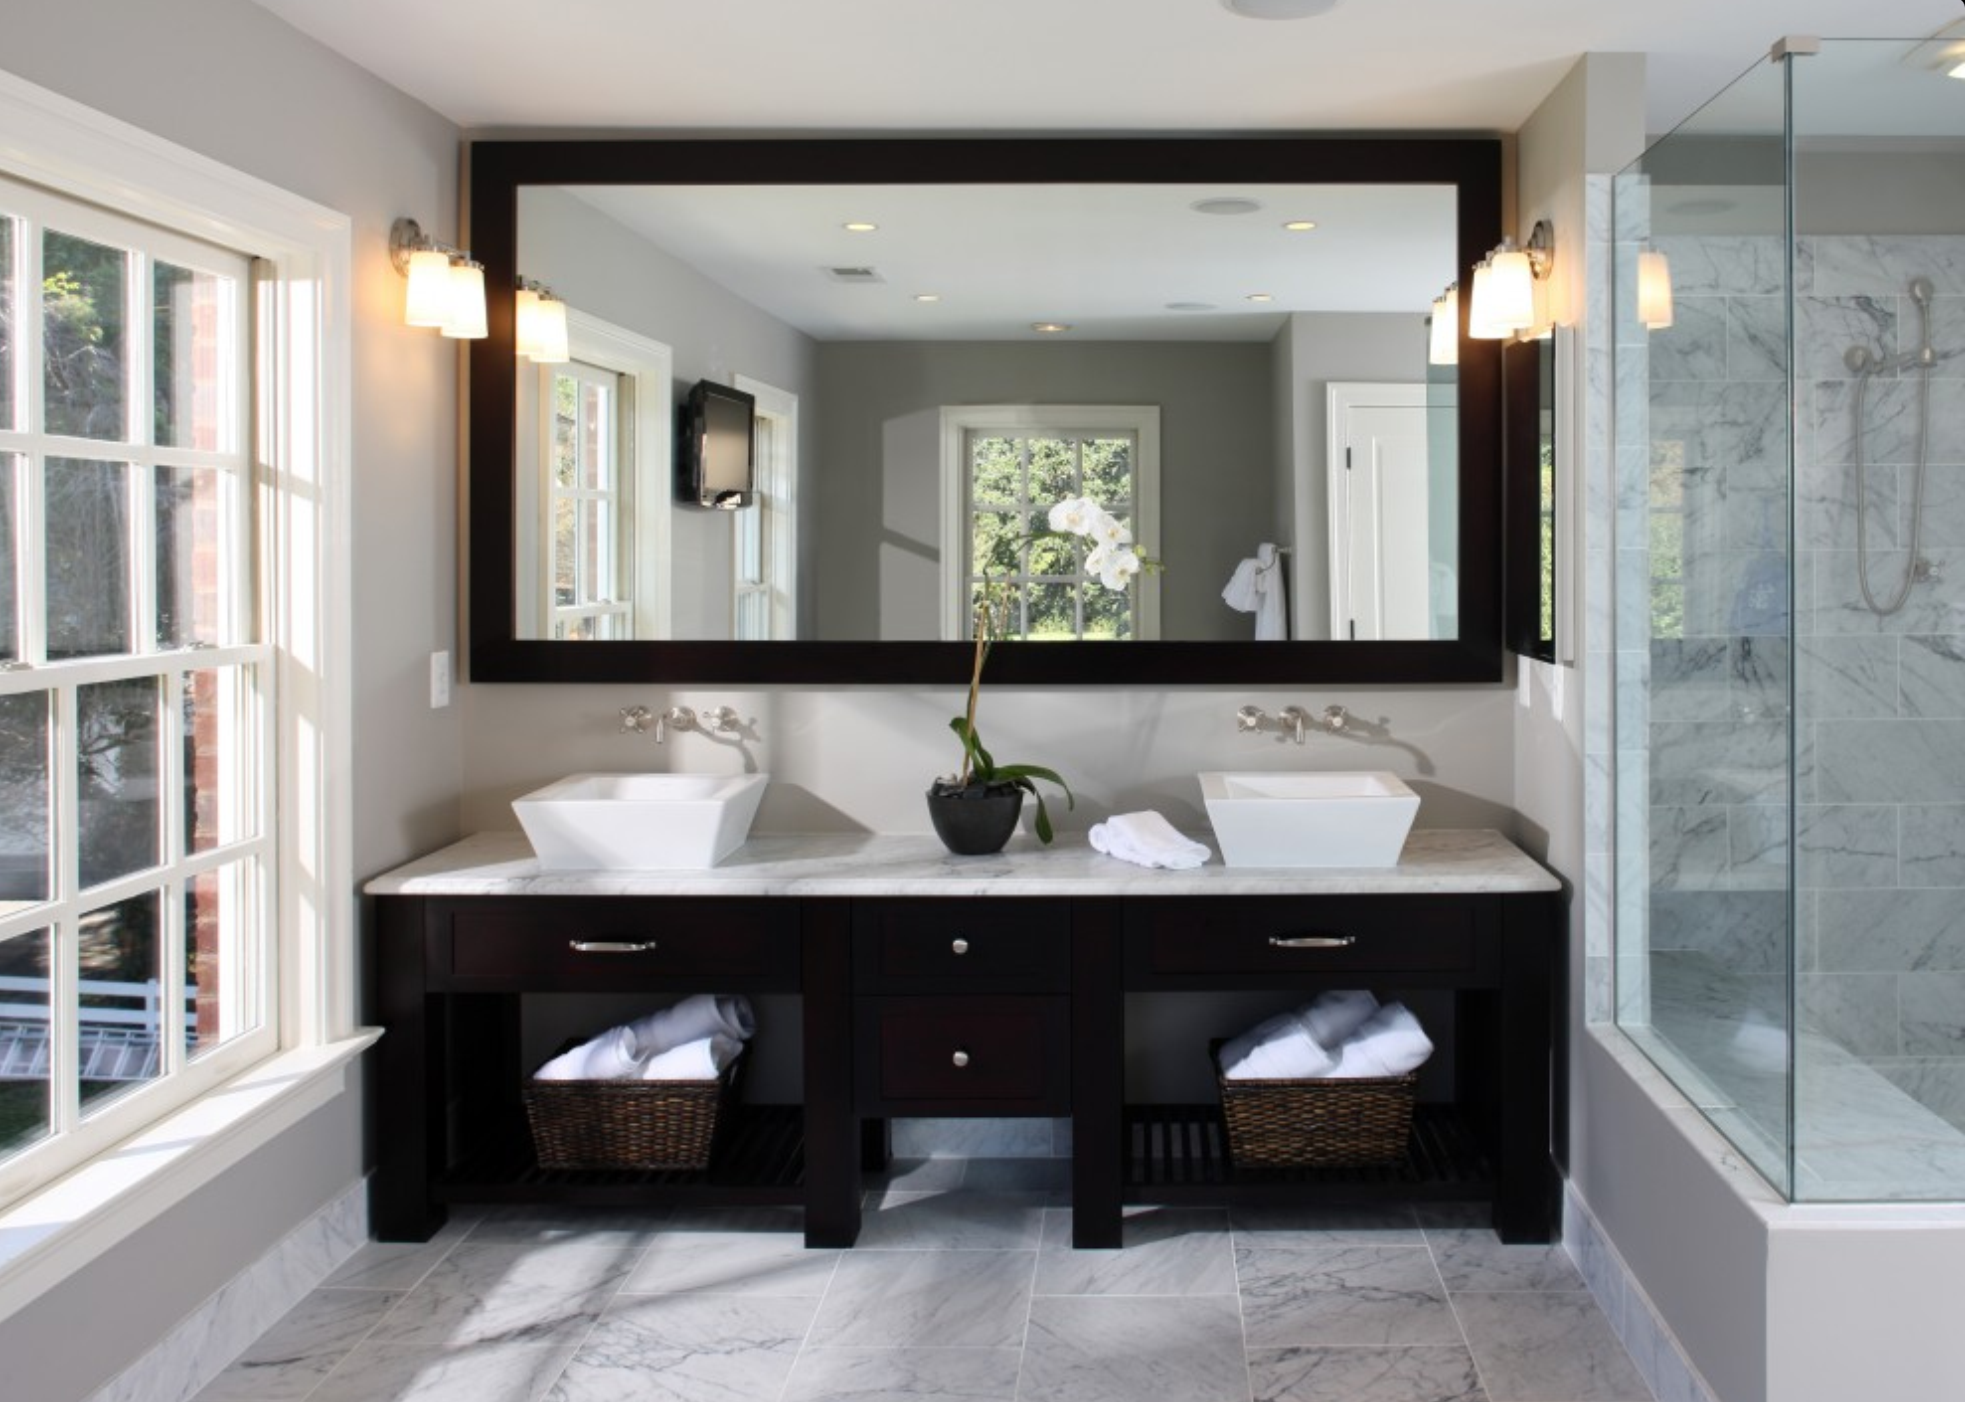 20152016 bathroom remodel trends homeadvisor - Pics Of Bathroom Remodels